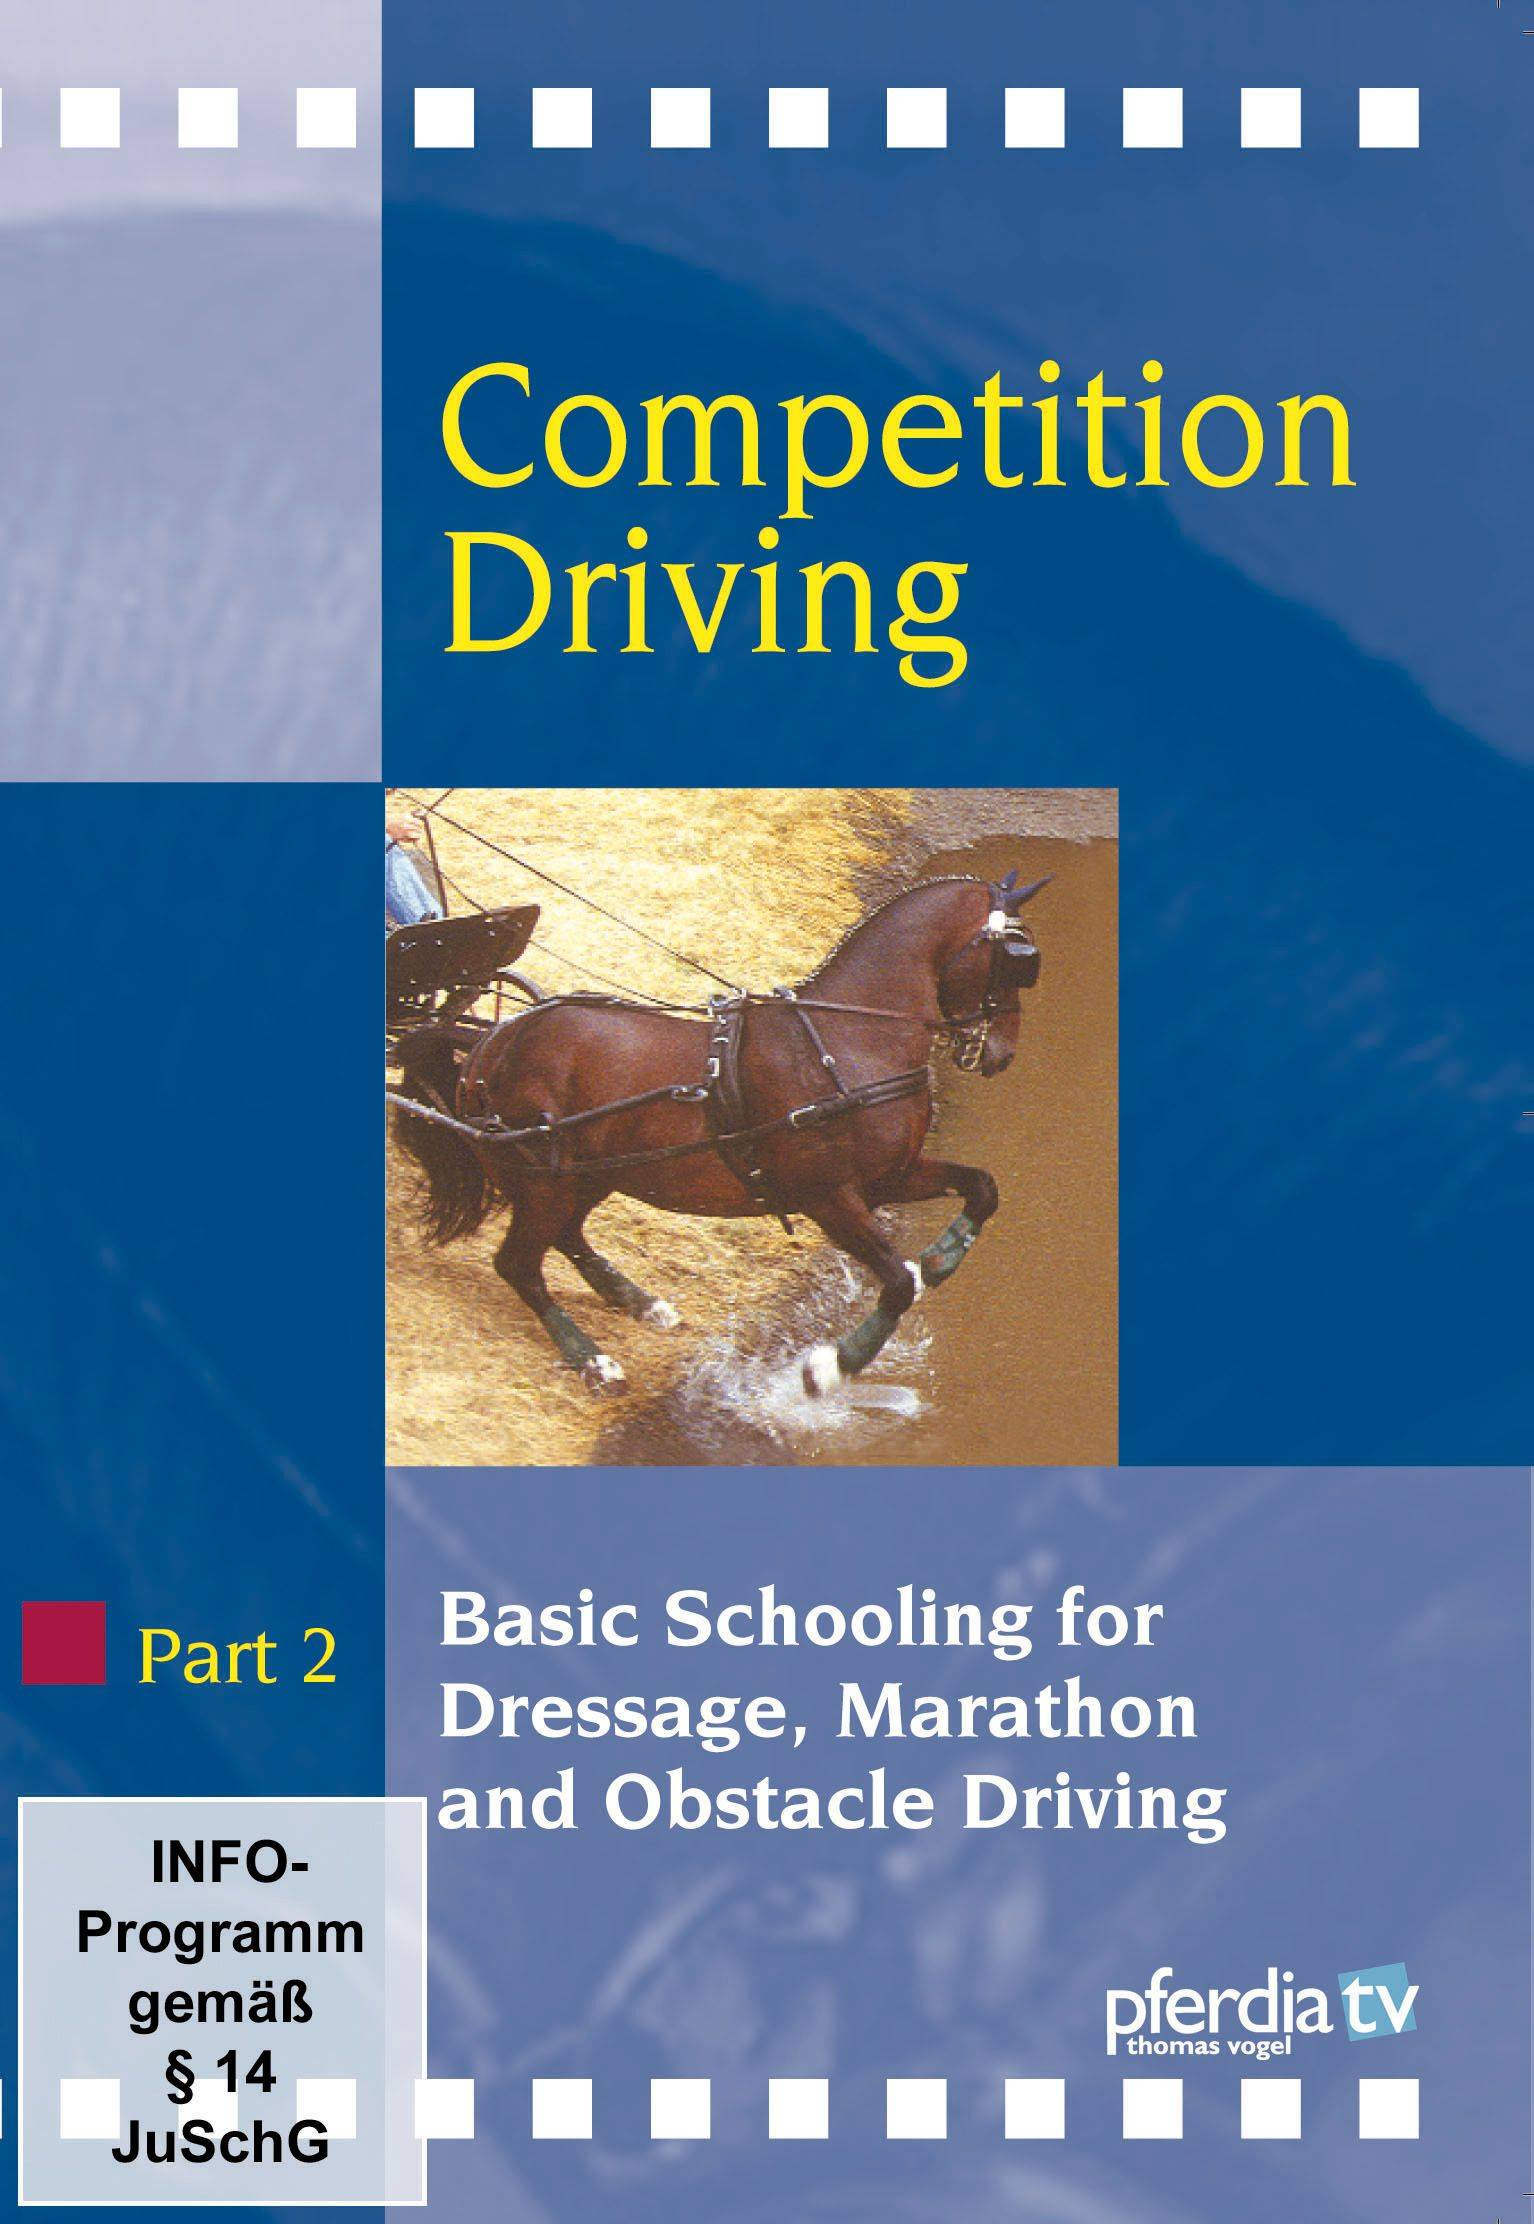 Competitive Driving Part 2 DVD with Frank Lutz